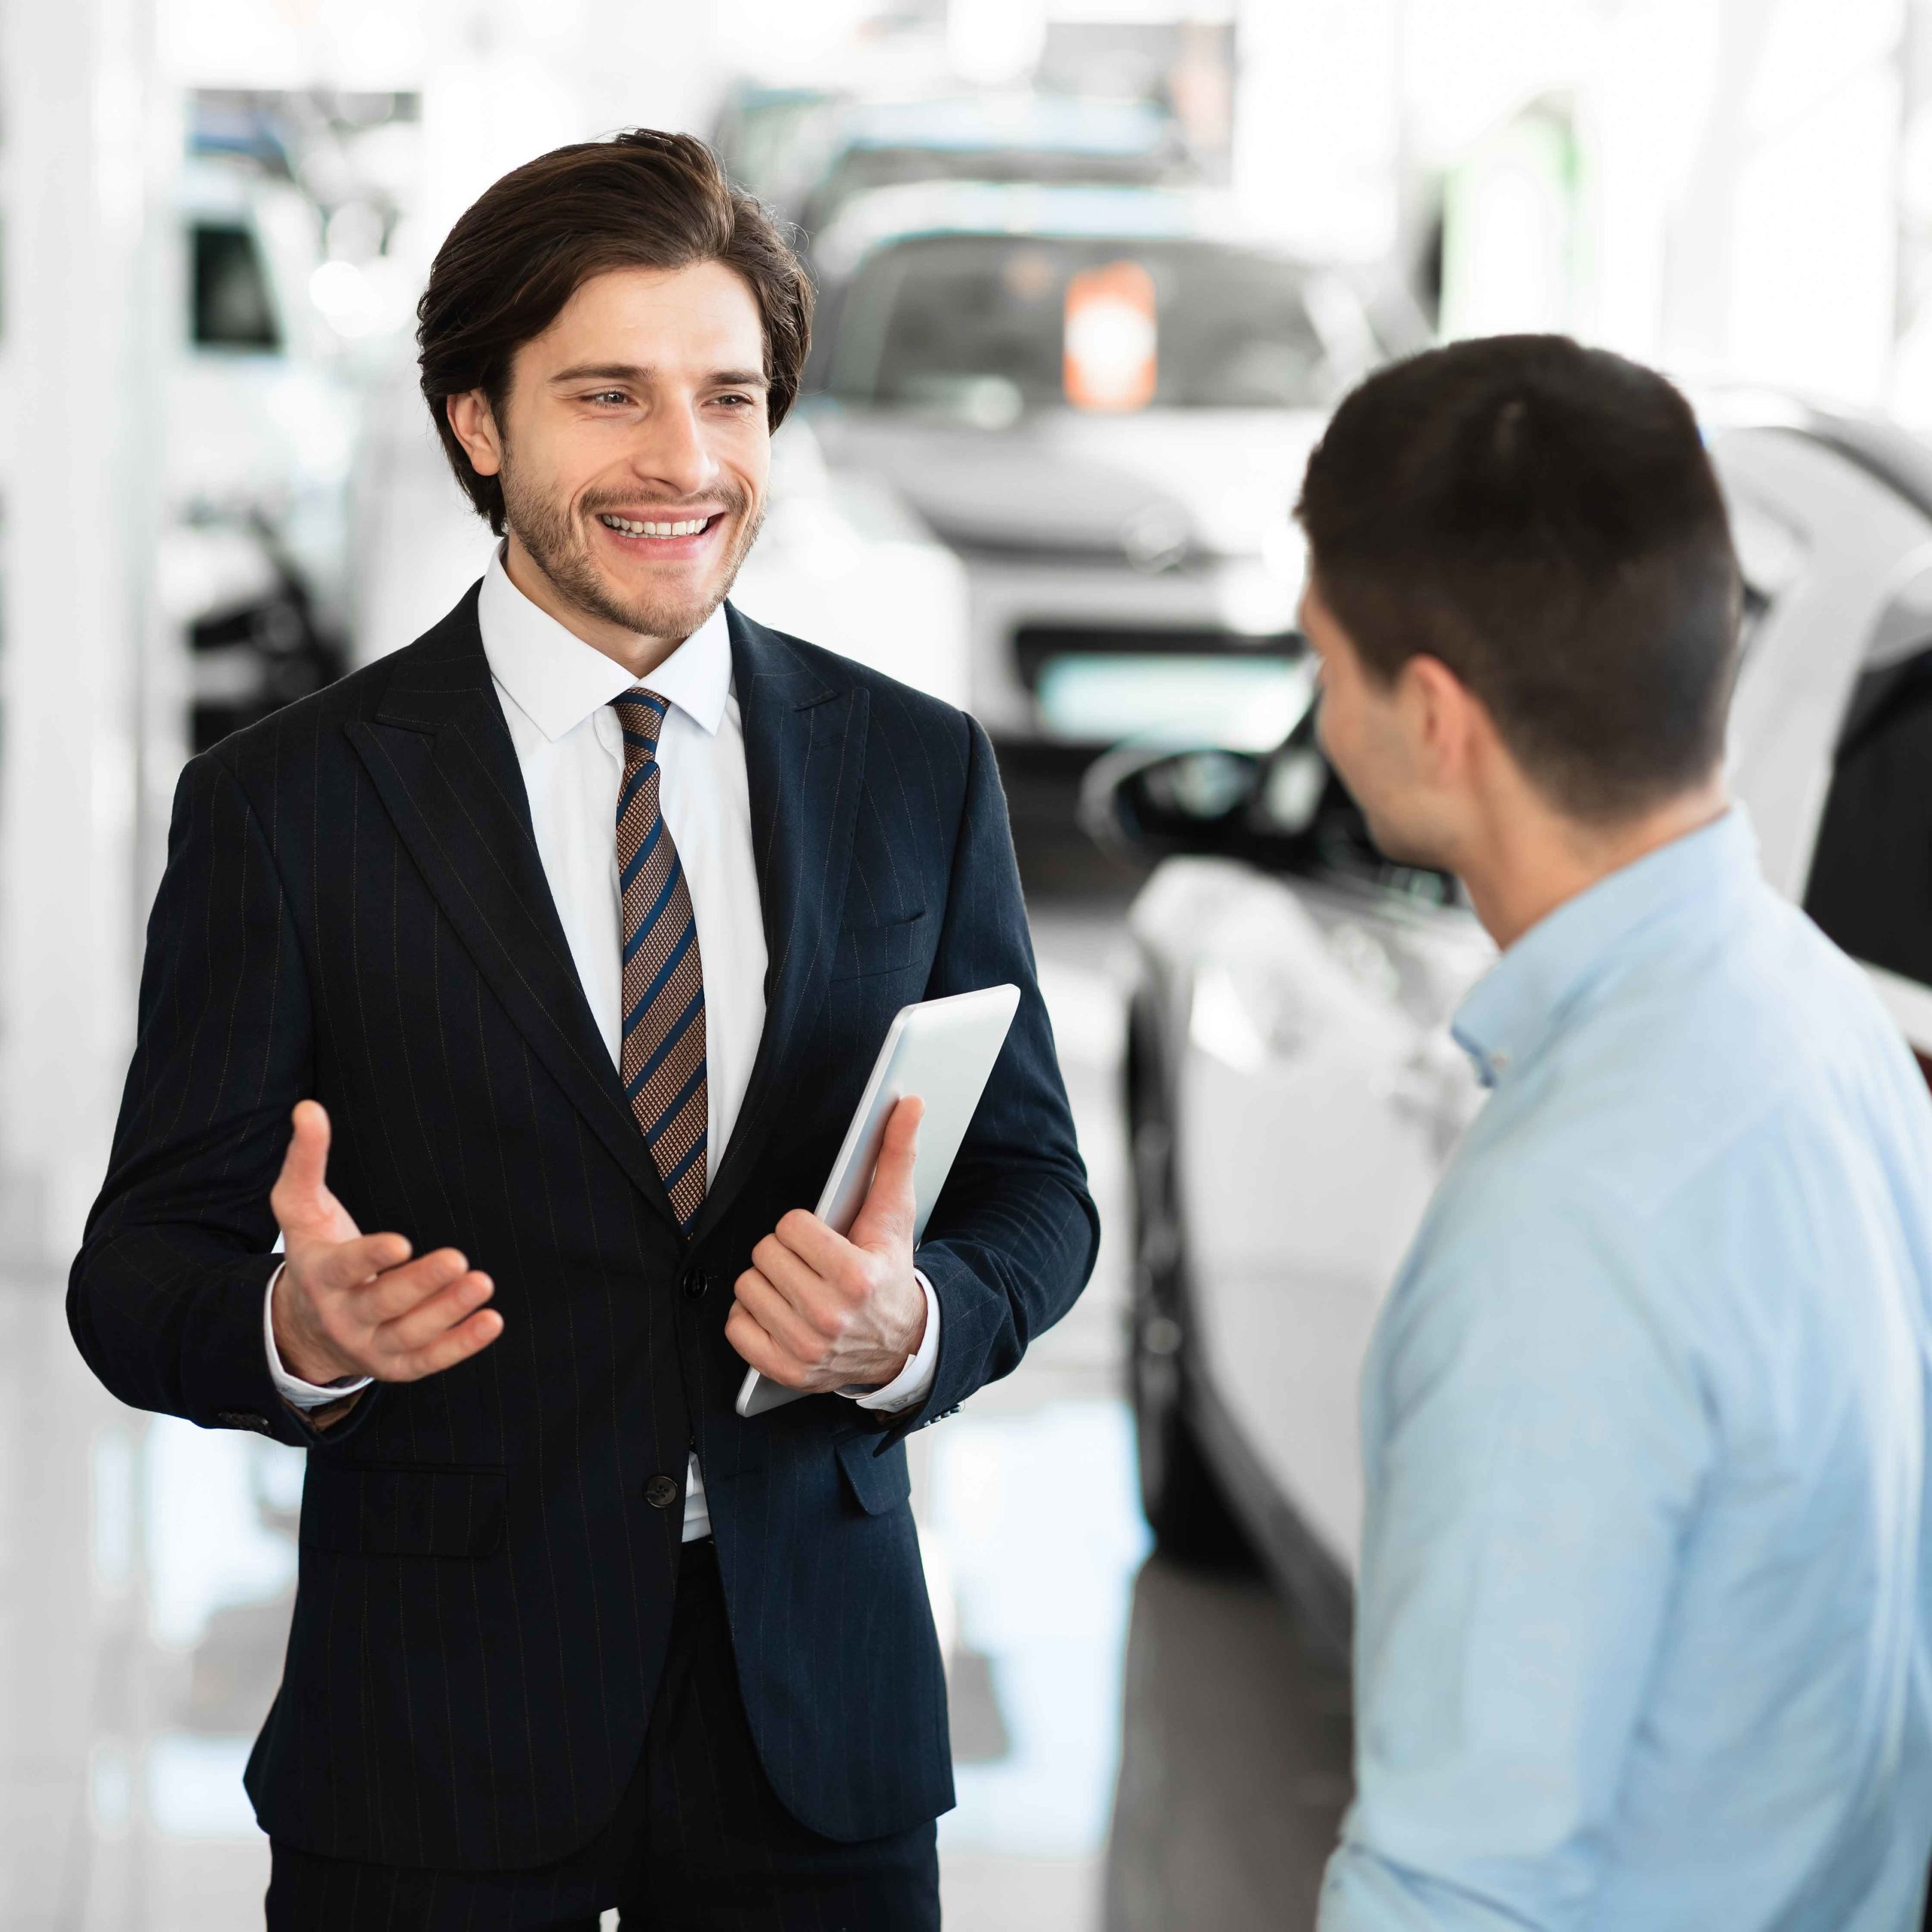 car-dealer-talking-with-clients-selling-them-autom-XJSXJLH